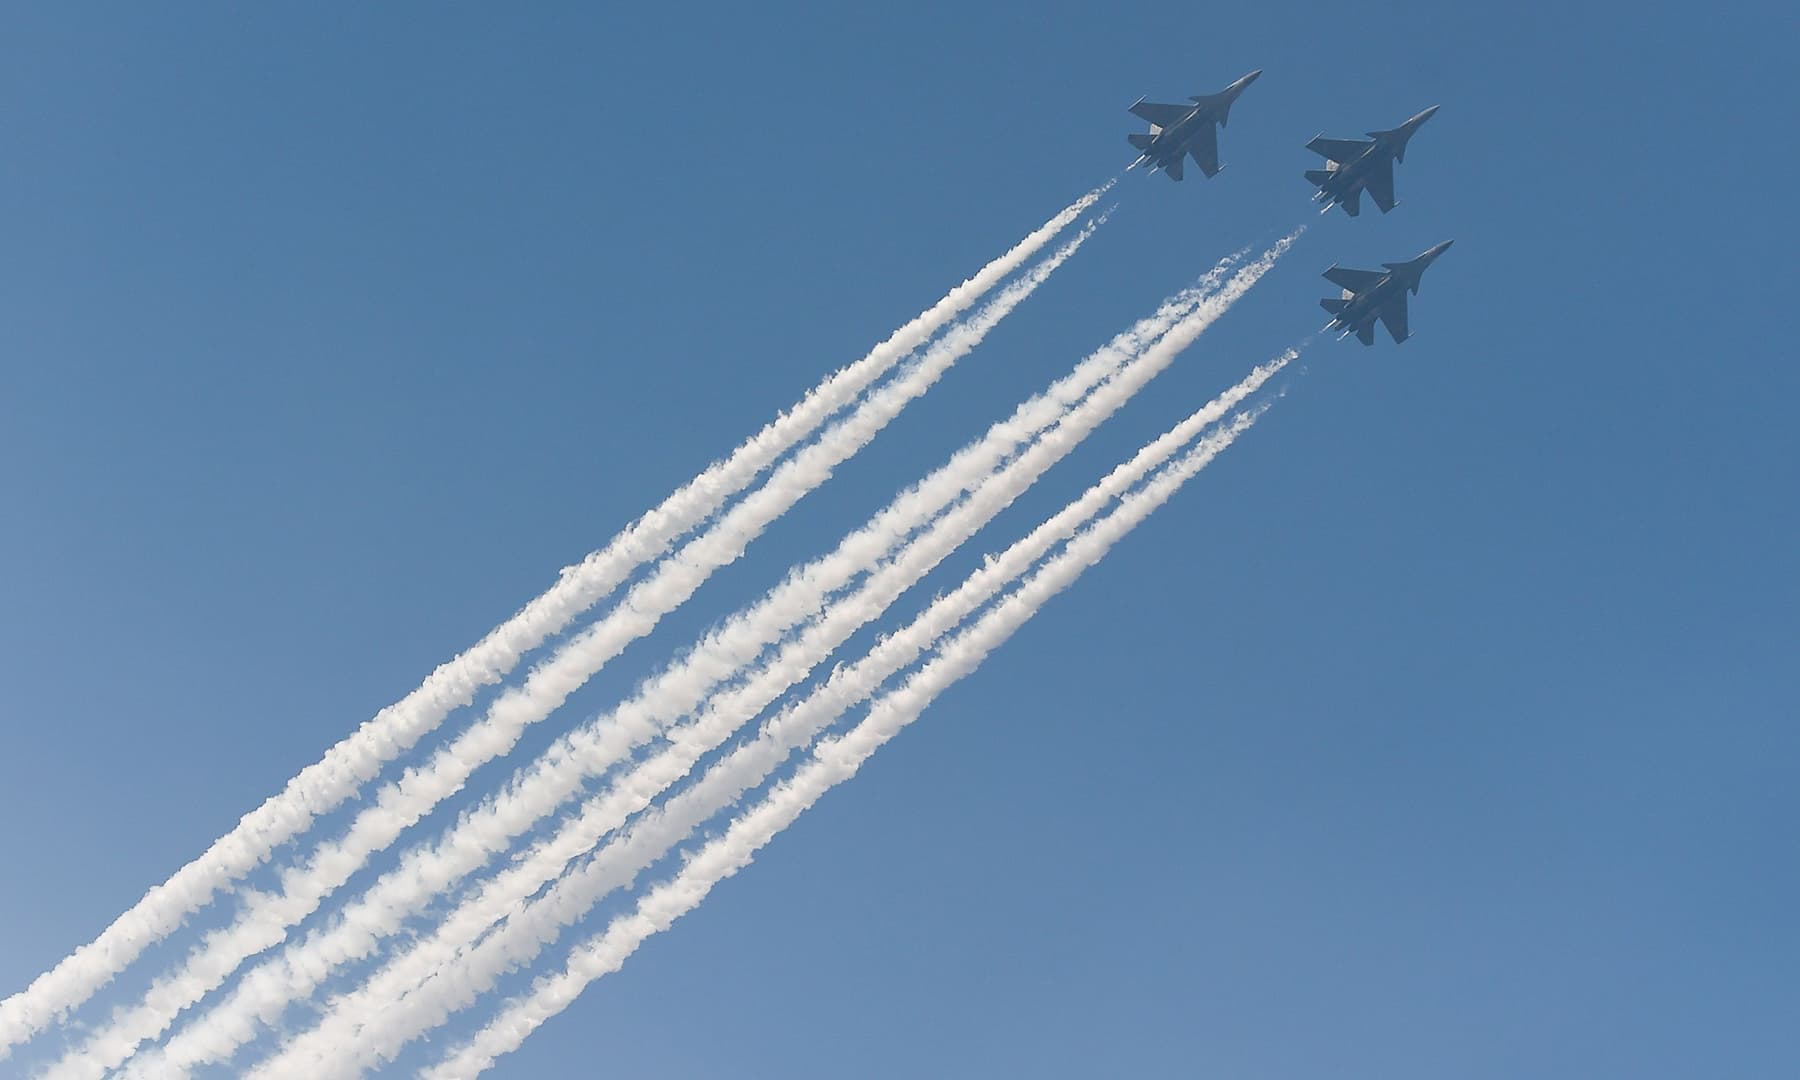 Indian Air Force's 'Jaguar' fighter jets flyover Rajpath during the Republic Day parade in New Delhi on January 26. — AFP